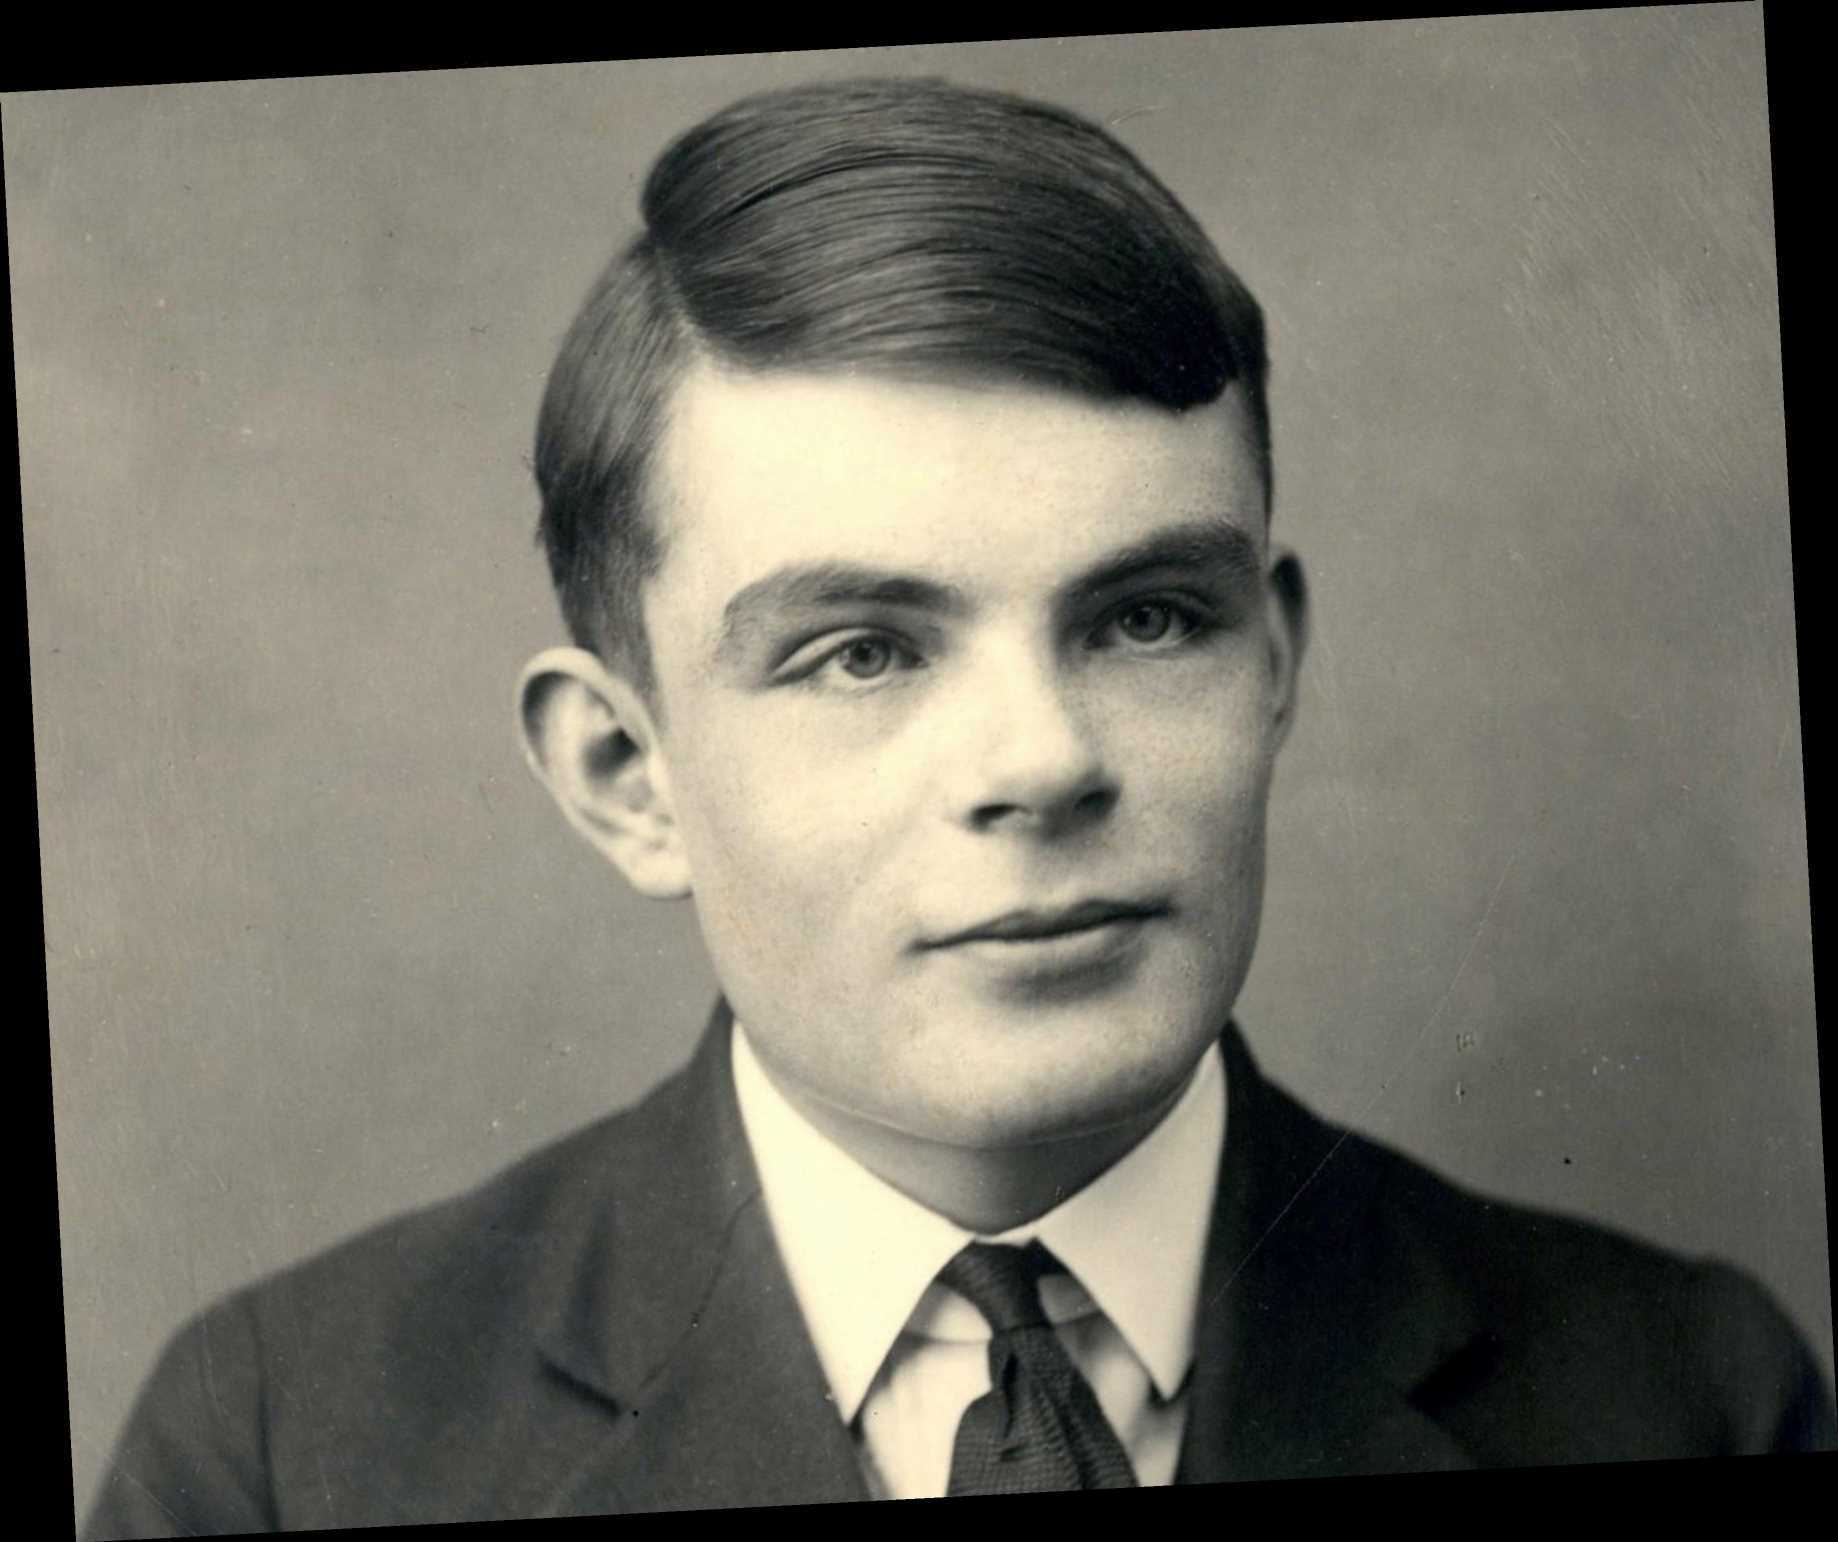 Who was Alan Turing and what is Turing's law?